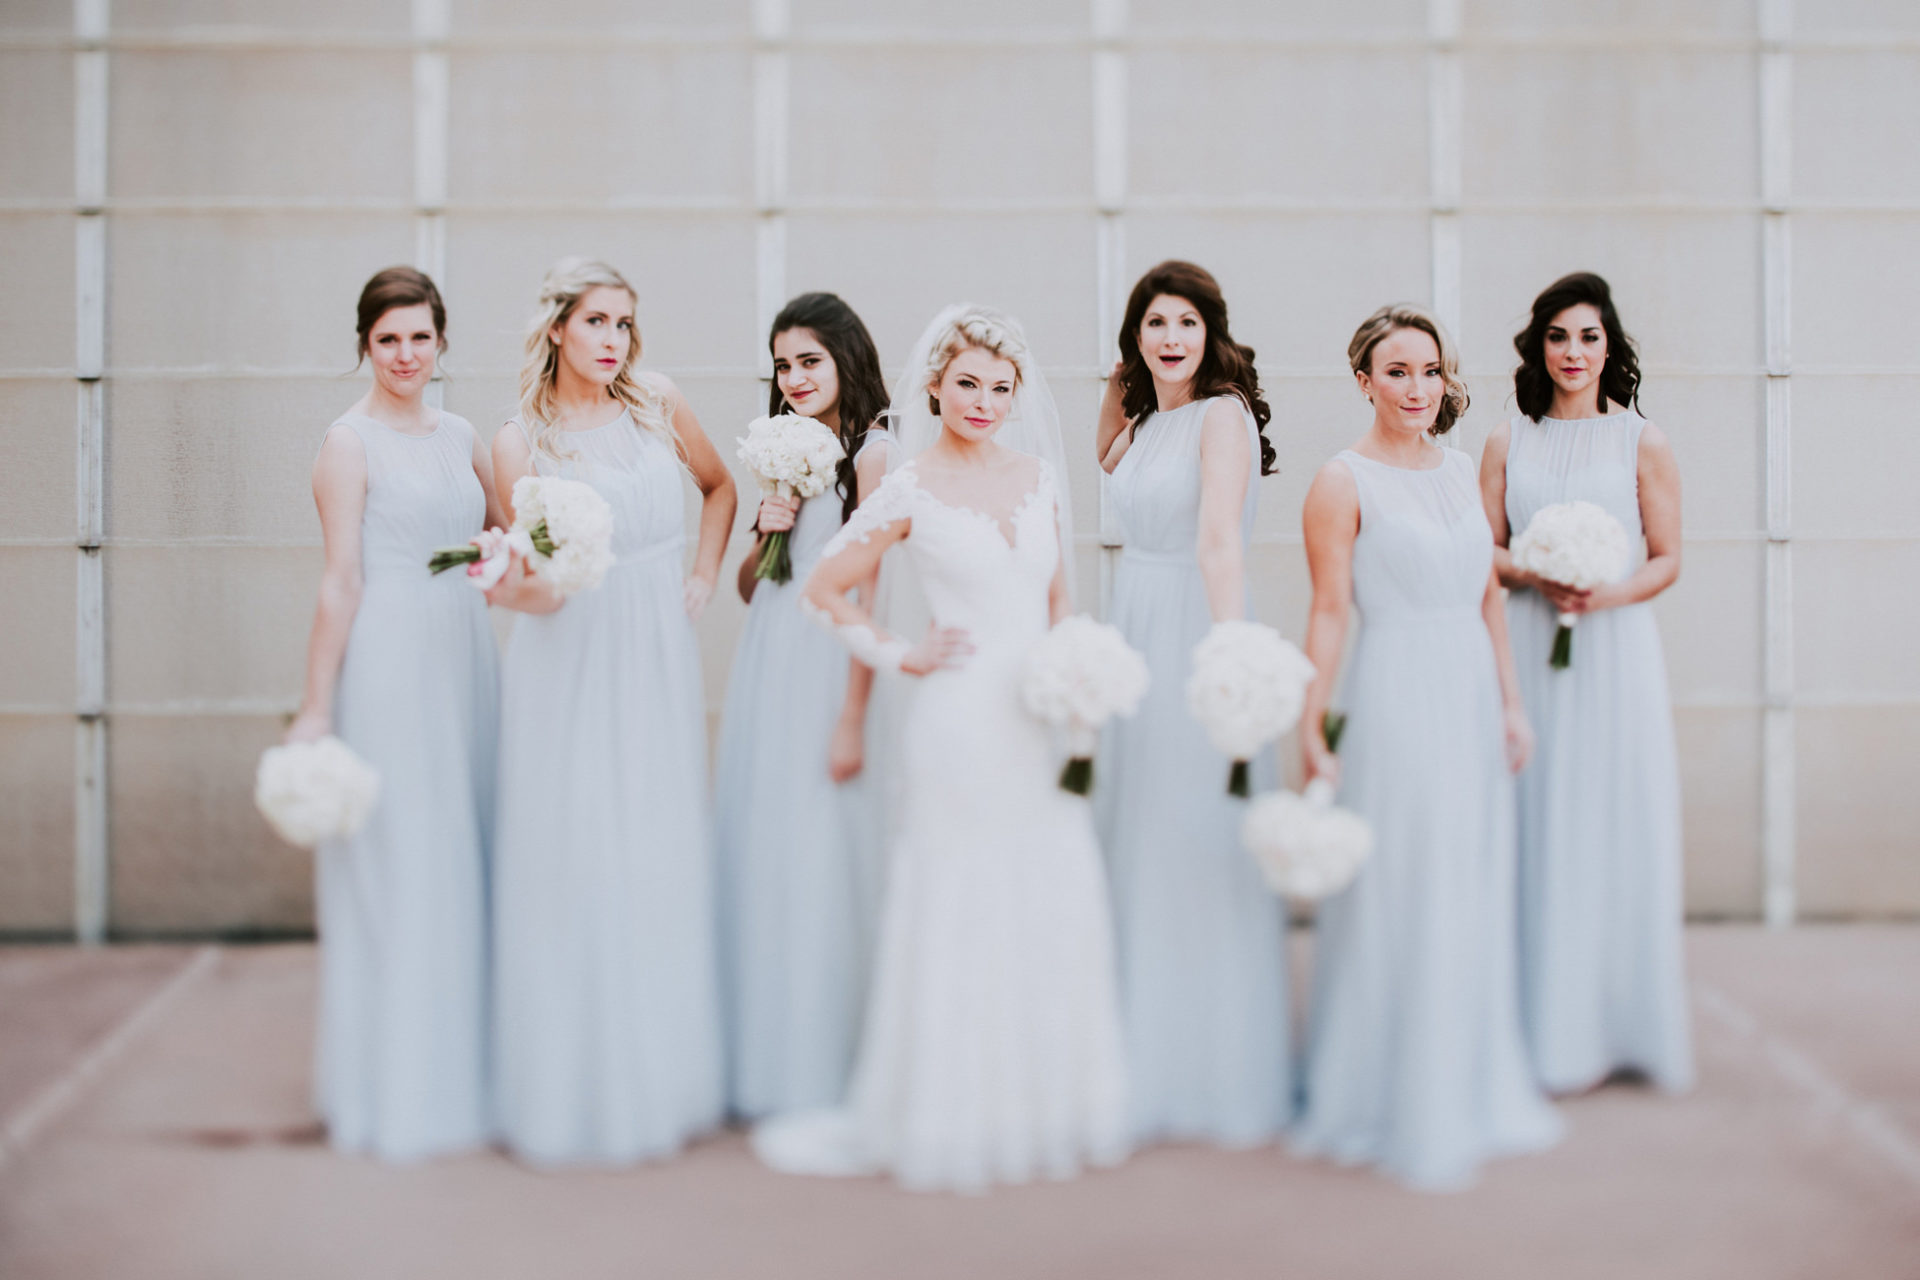 best-top-los-angeles-destination-wedding-photographer-hipster-modern-quirky-editorial-romantic-epic-13-okc-gaylord-pickens-museum-hall-of-fame